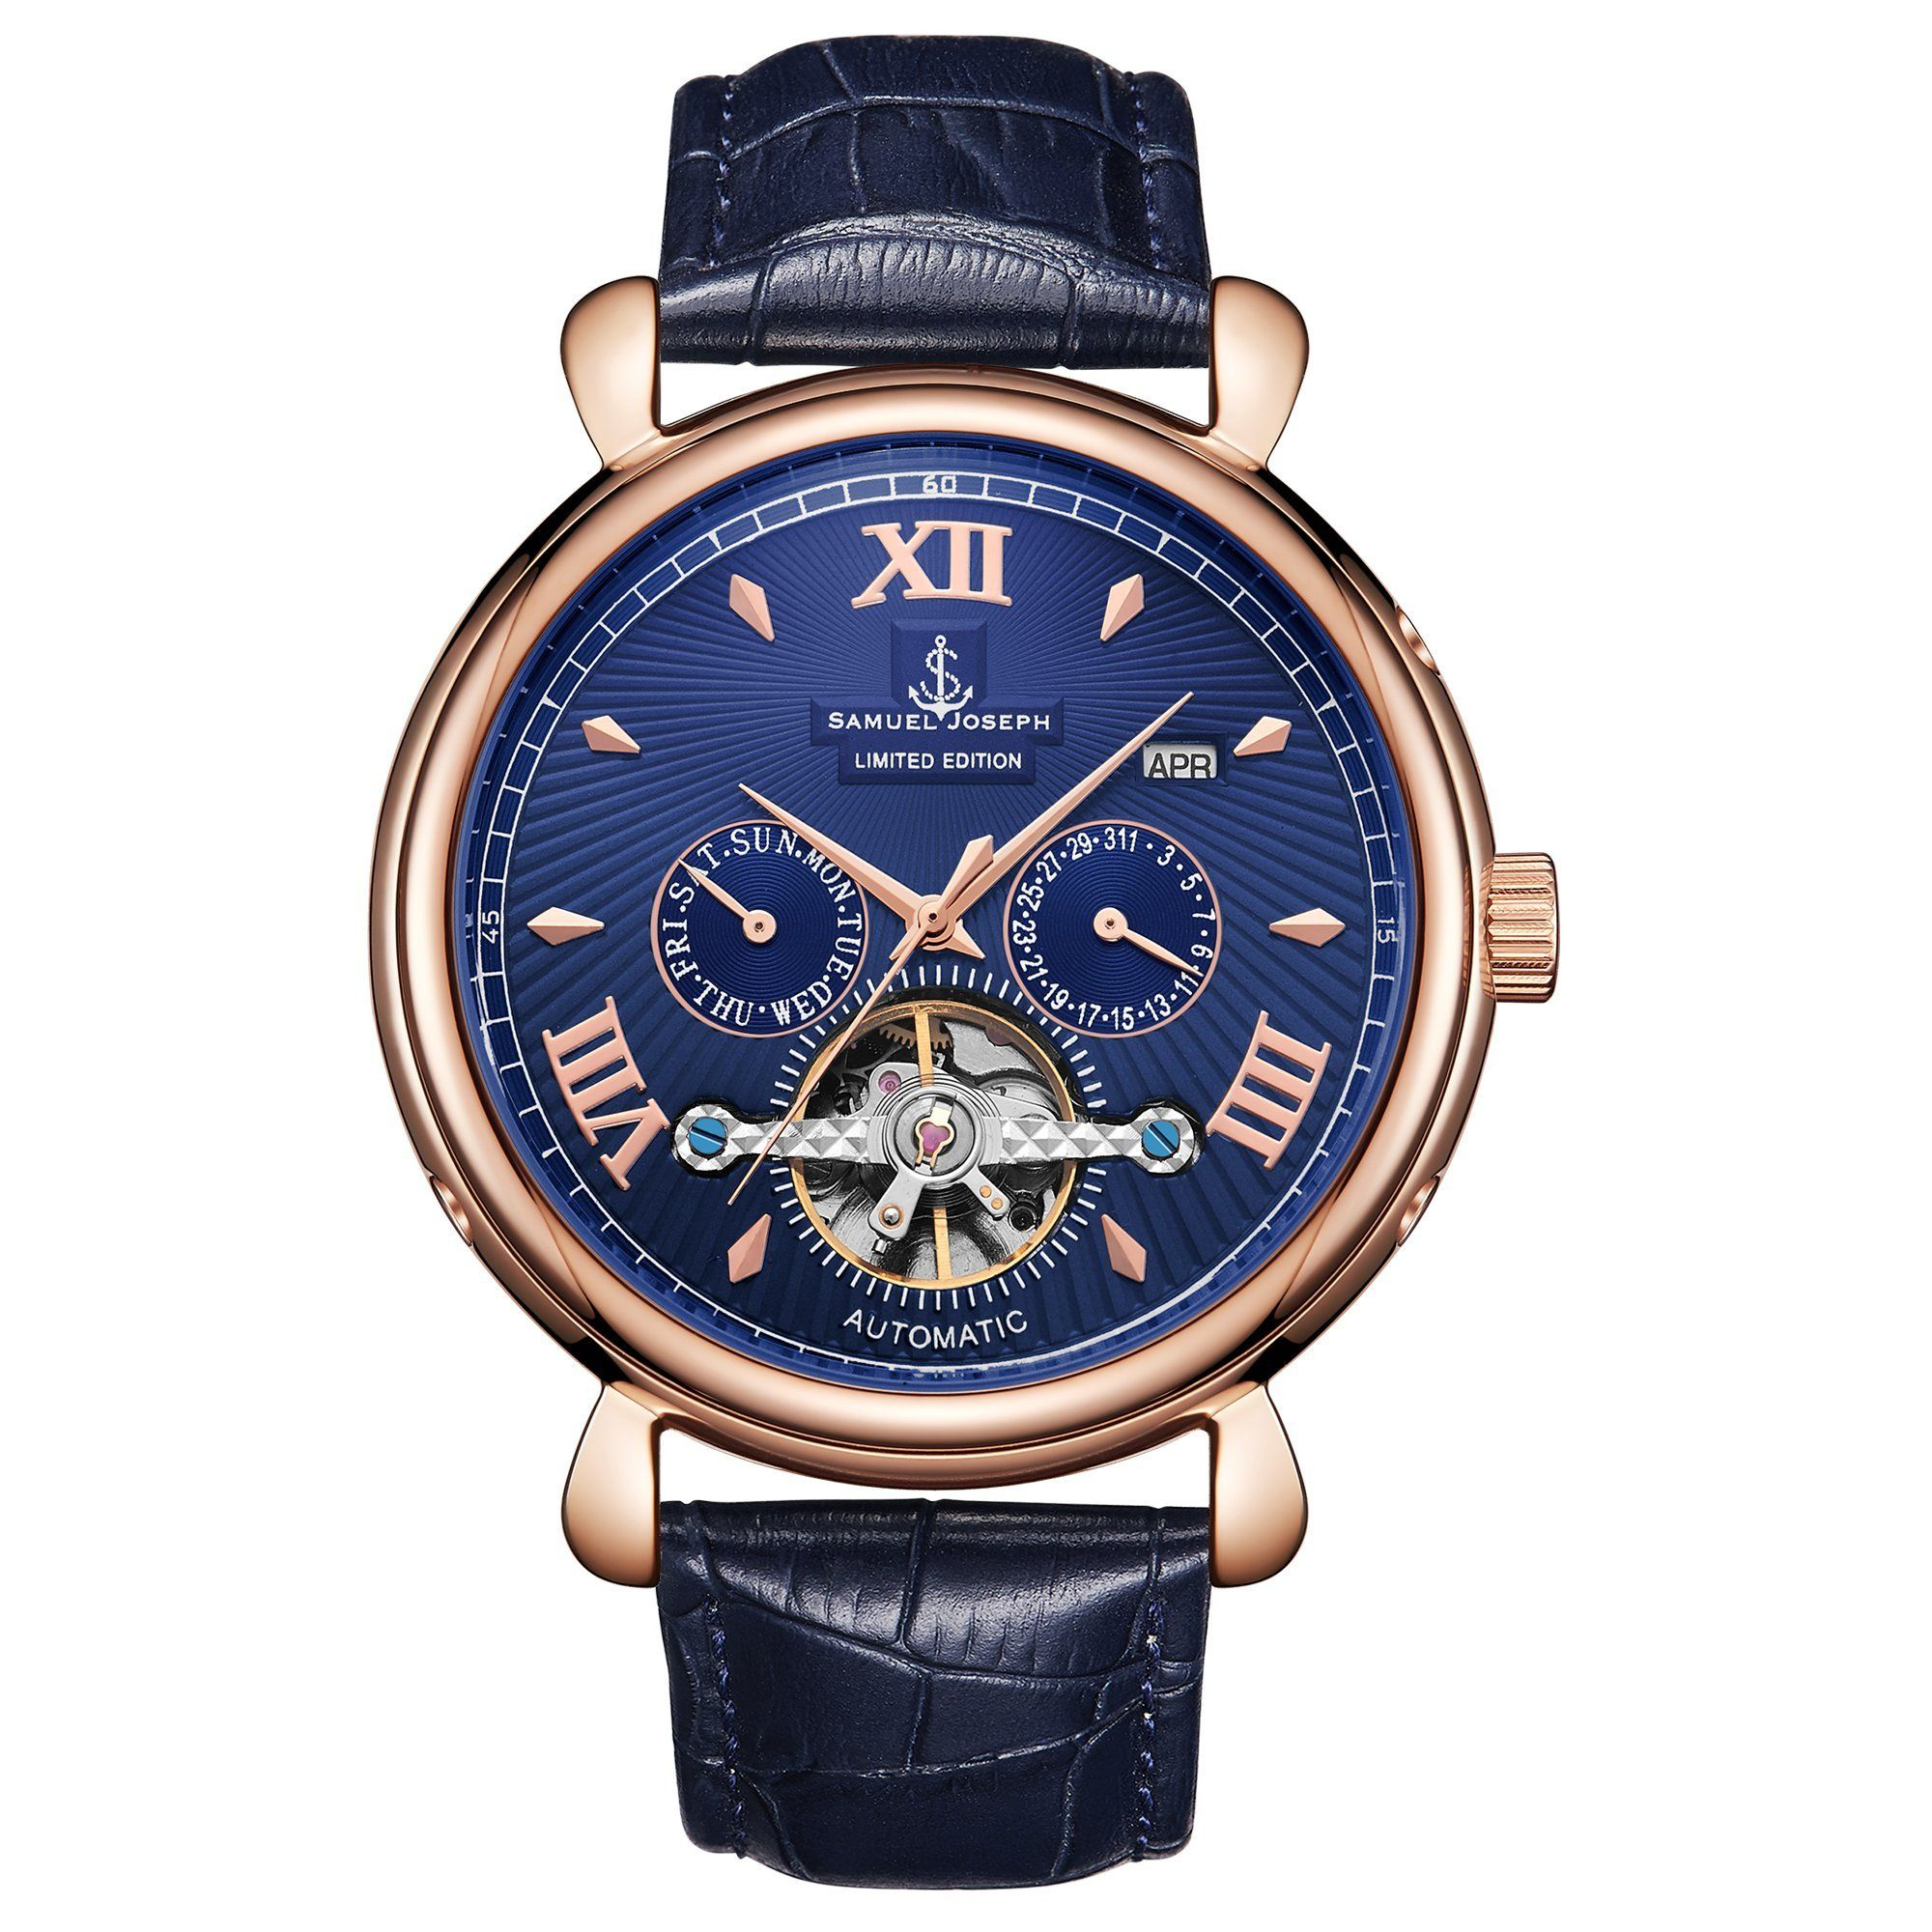 Samuel Joseph Limited Edition Rose & Blue Automatic Designer Mens Watch